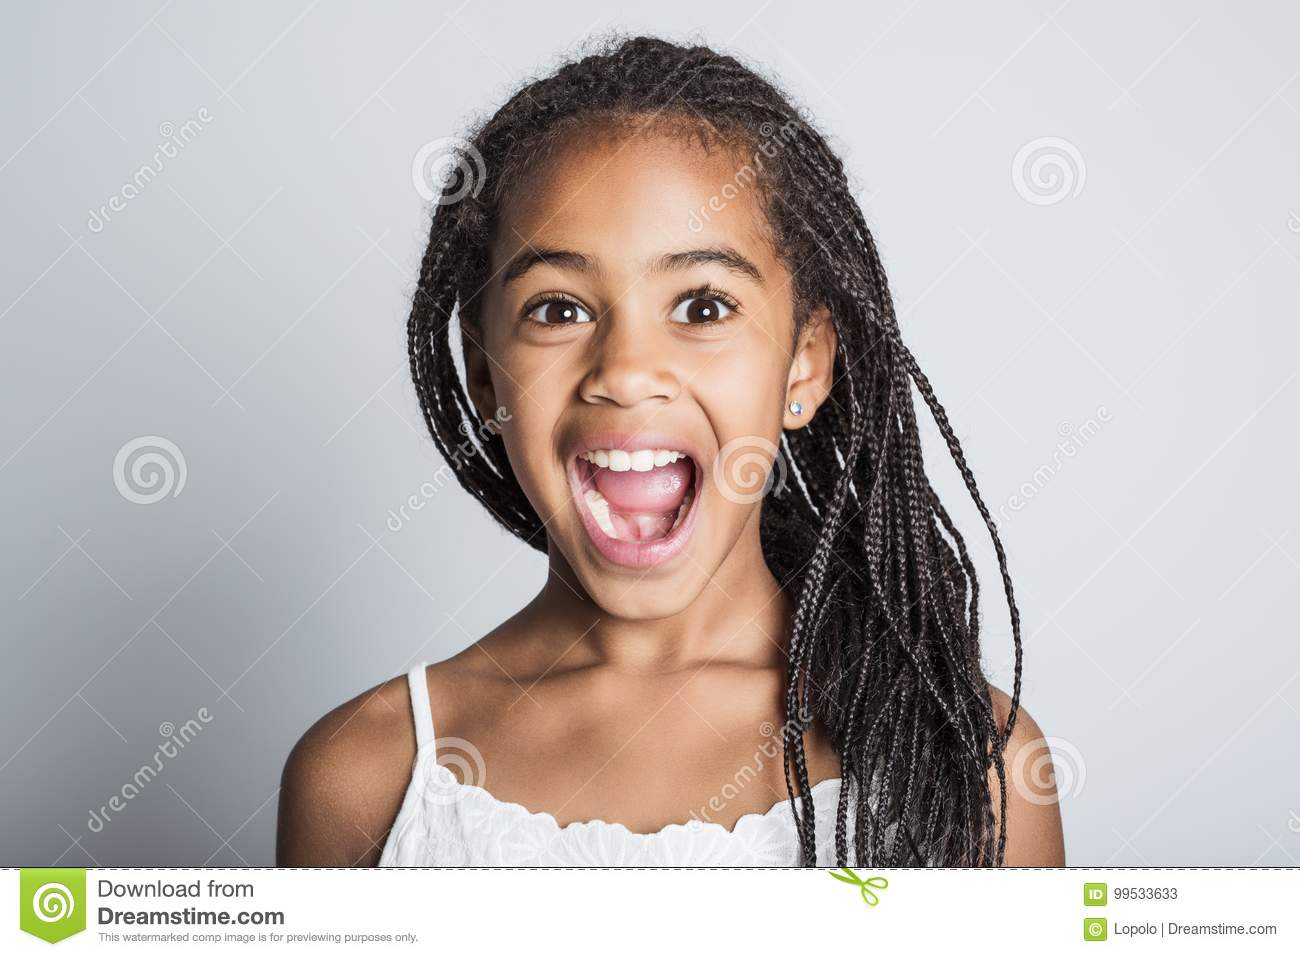 Adorable african little girl on studio gray background